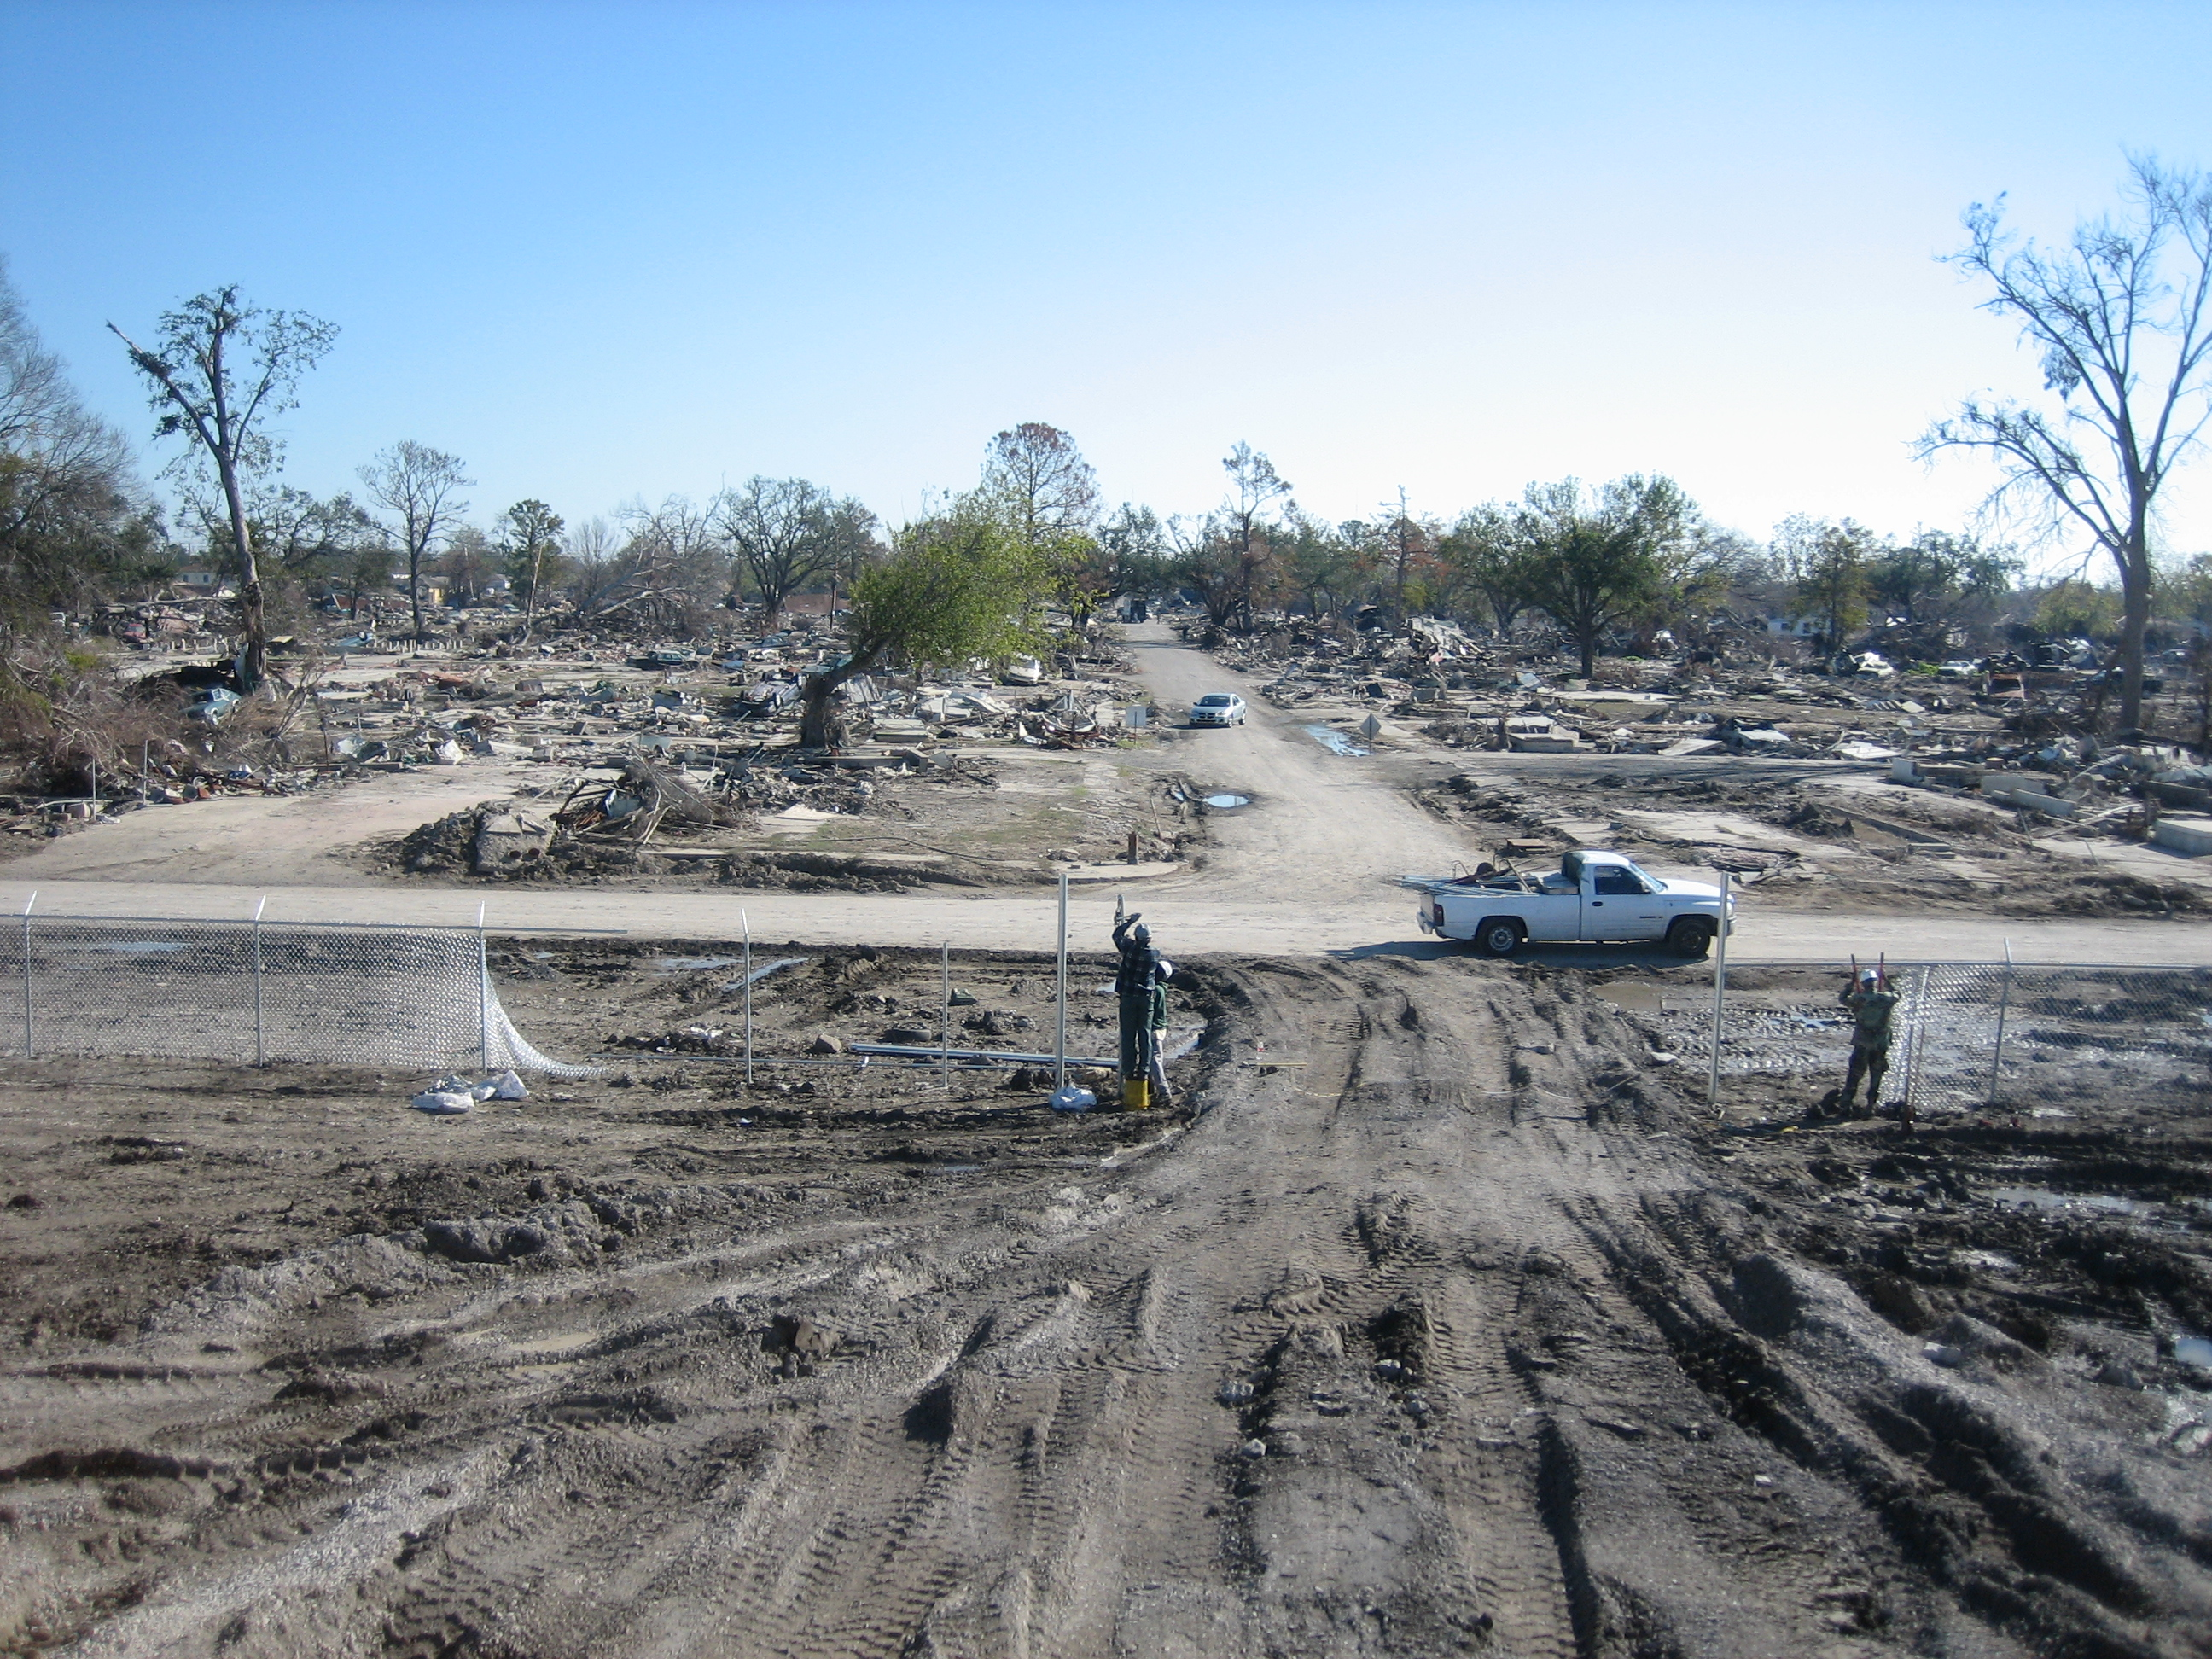 A neighborhood, the 9th Ward in New Orleans, is completely flat due to Hurricane Katrina